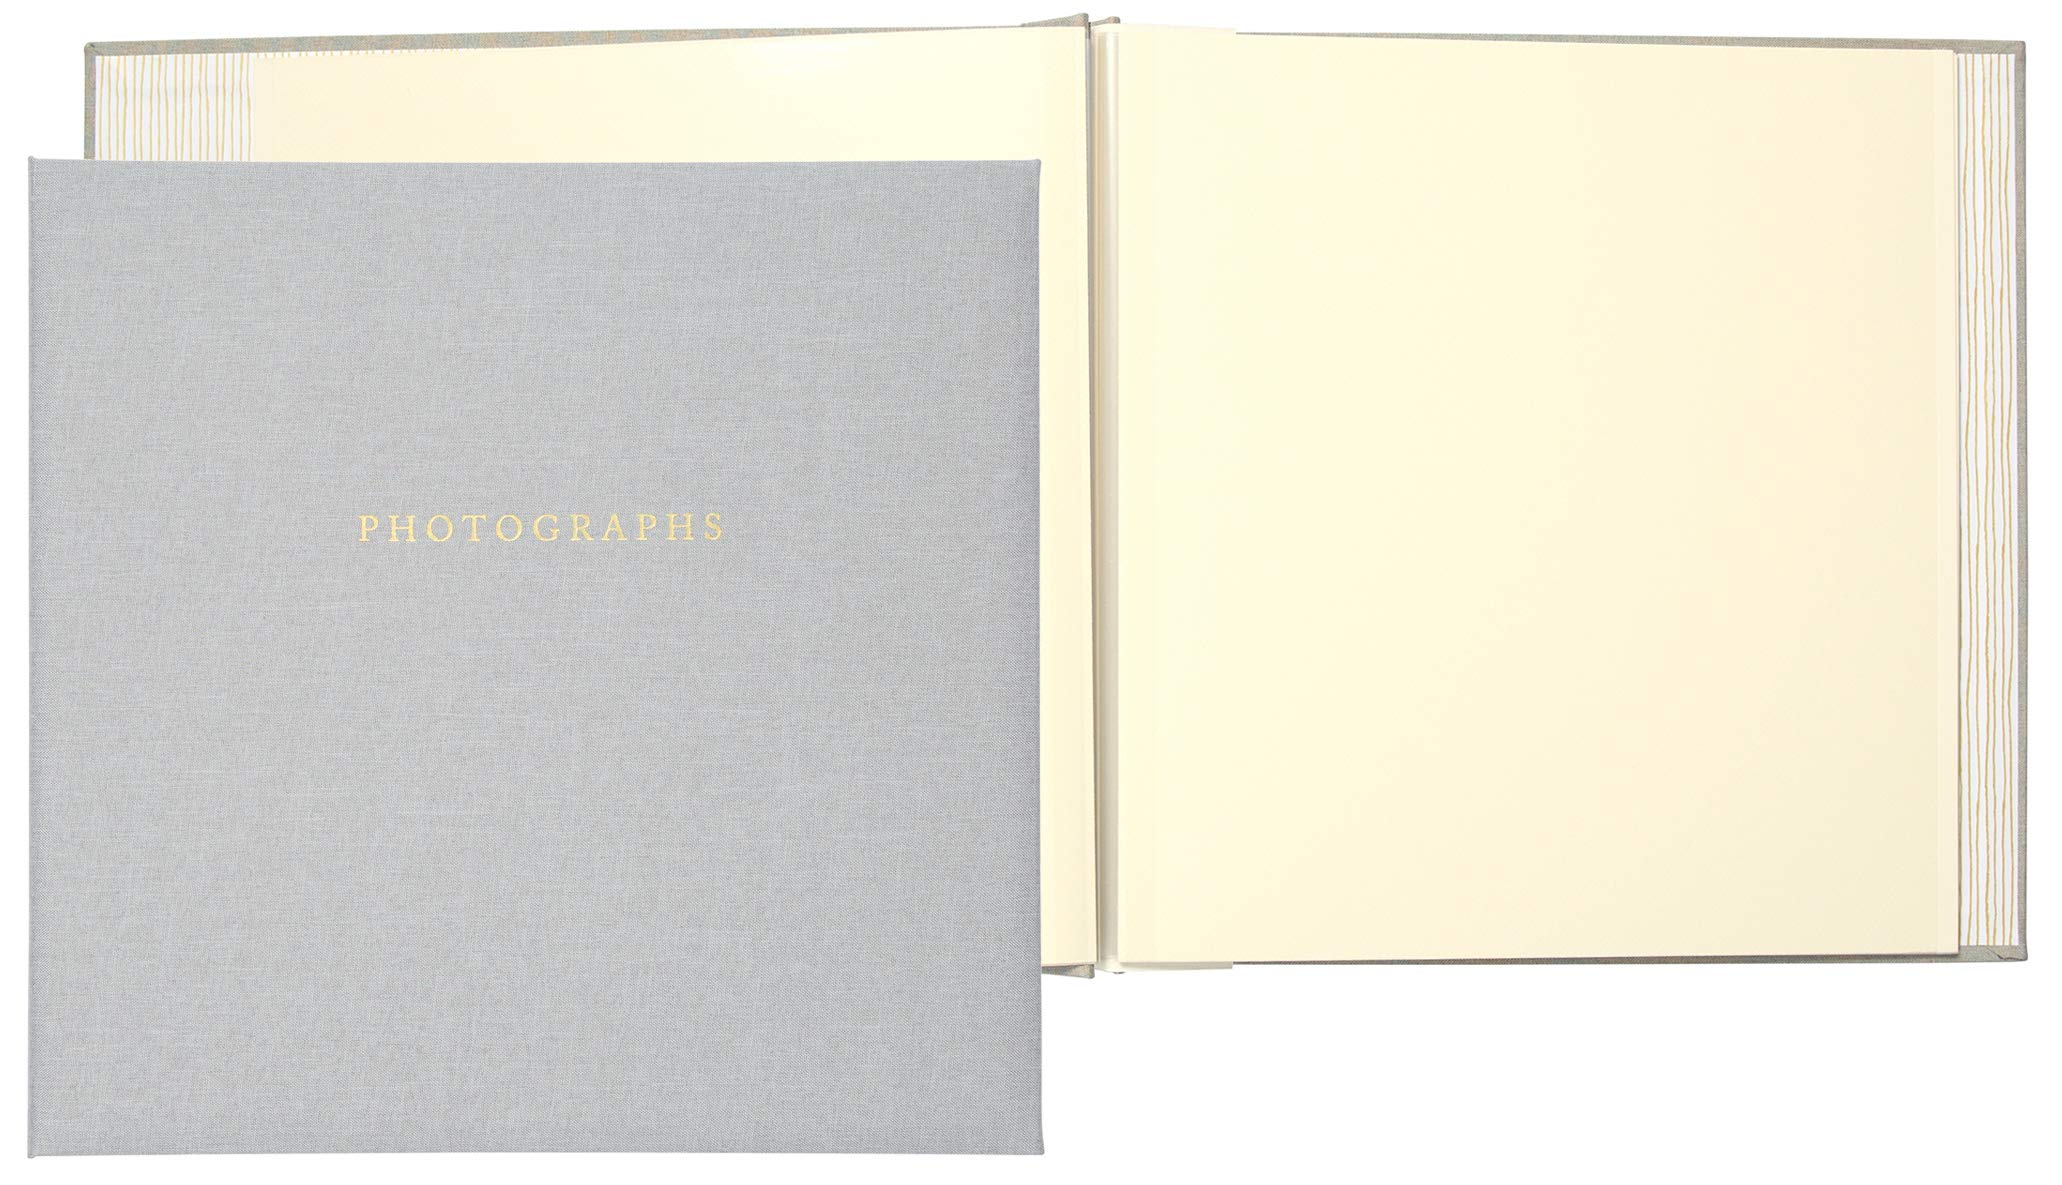 C.R. Gibson Gray ''Photographs'' 1-Up Magnetic Memory Book and Photo Album, 16 Pages, 13.6'' W x 13'' H